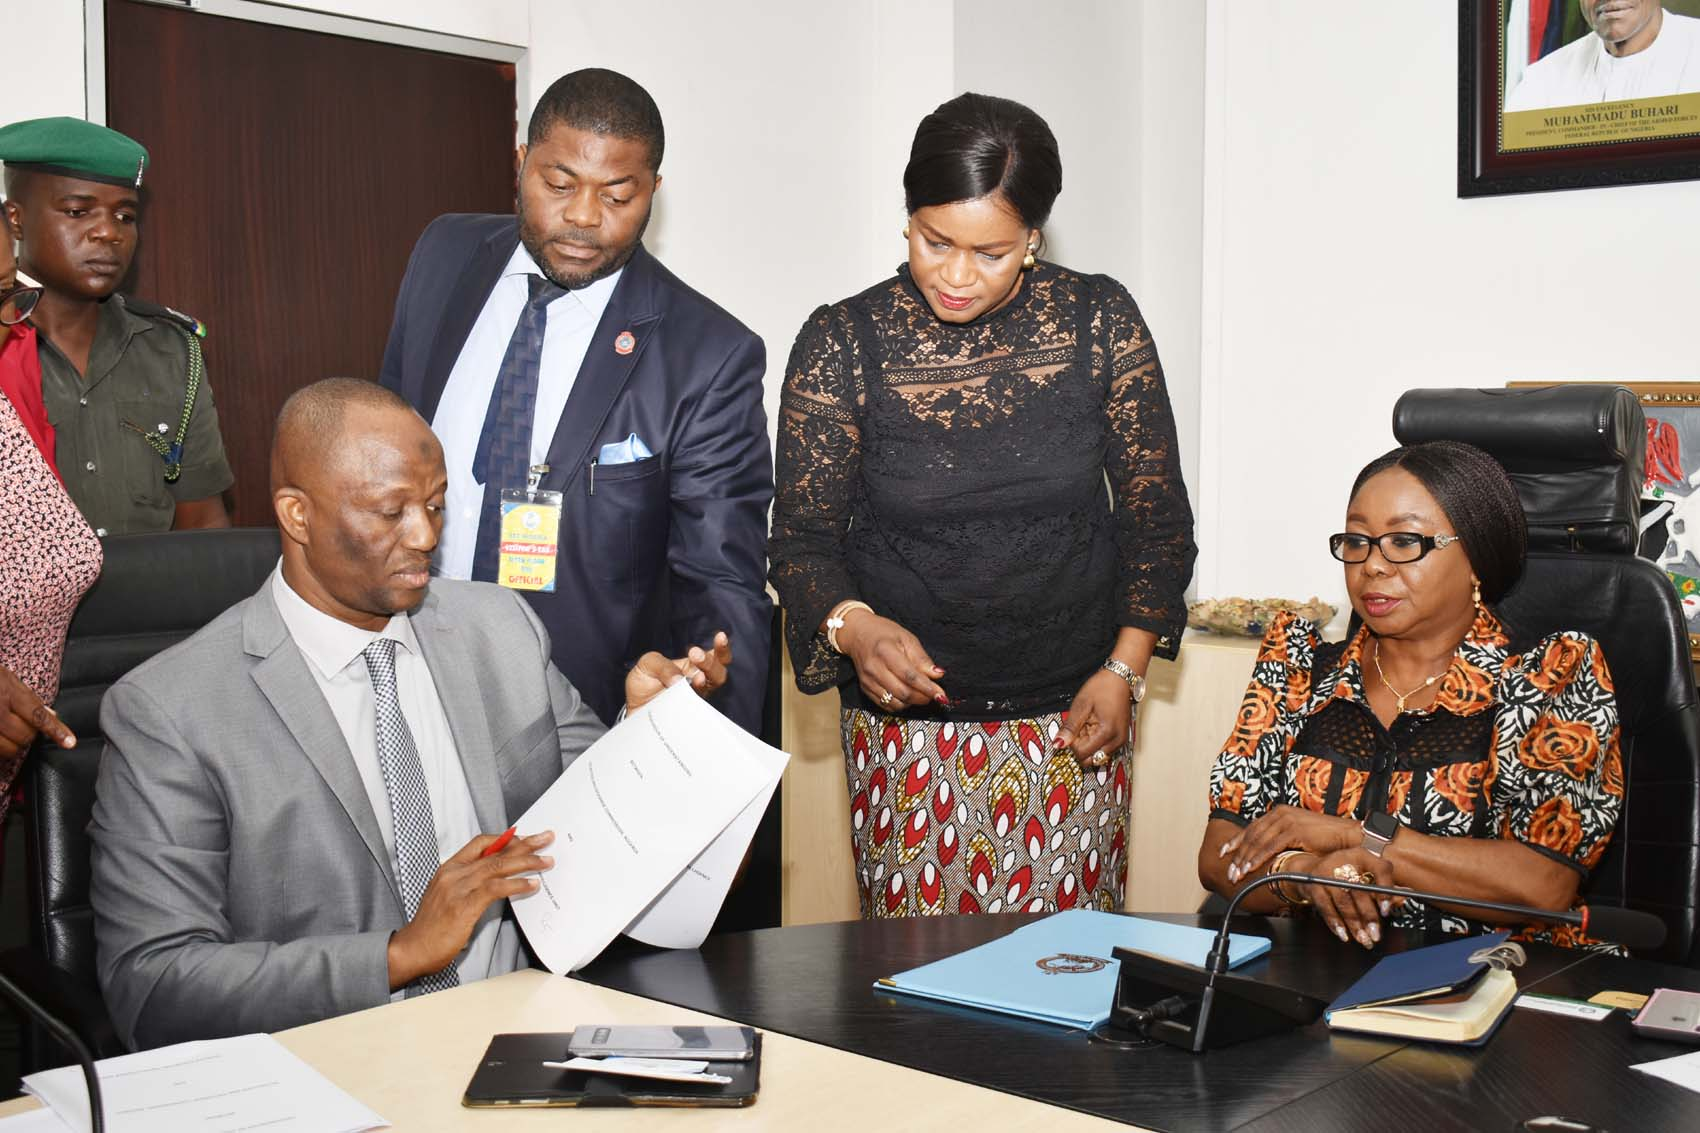 L-R,  Director, Nigerian Financial Intelligence Unit, Mr Modibbo Tukur,  Head Public Affairs NFIU Mr Dominic Offor,  Head Legal, Securities and Exchange Commission Mrs Anastasia Braimoh and Acting, Director General,  SEC Ms Mary Uduk  during the Signing of MOU between SEC and NFIU in Abuja, Wednesday